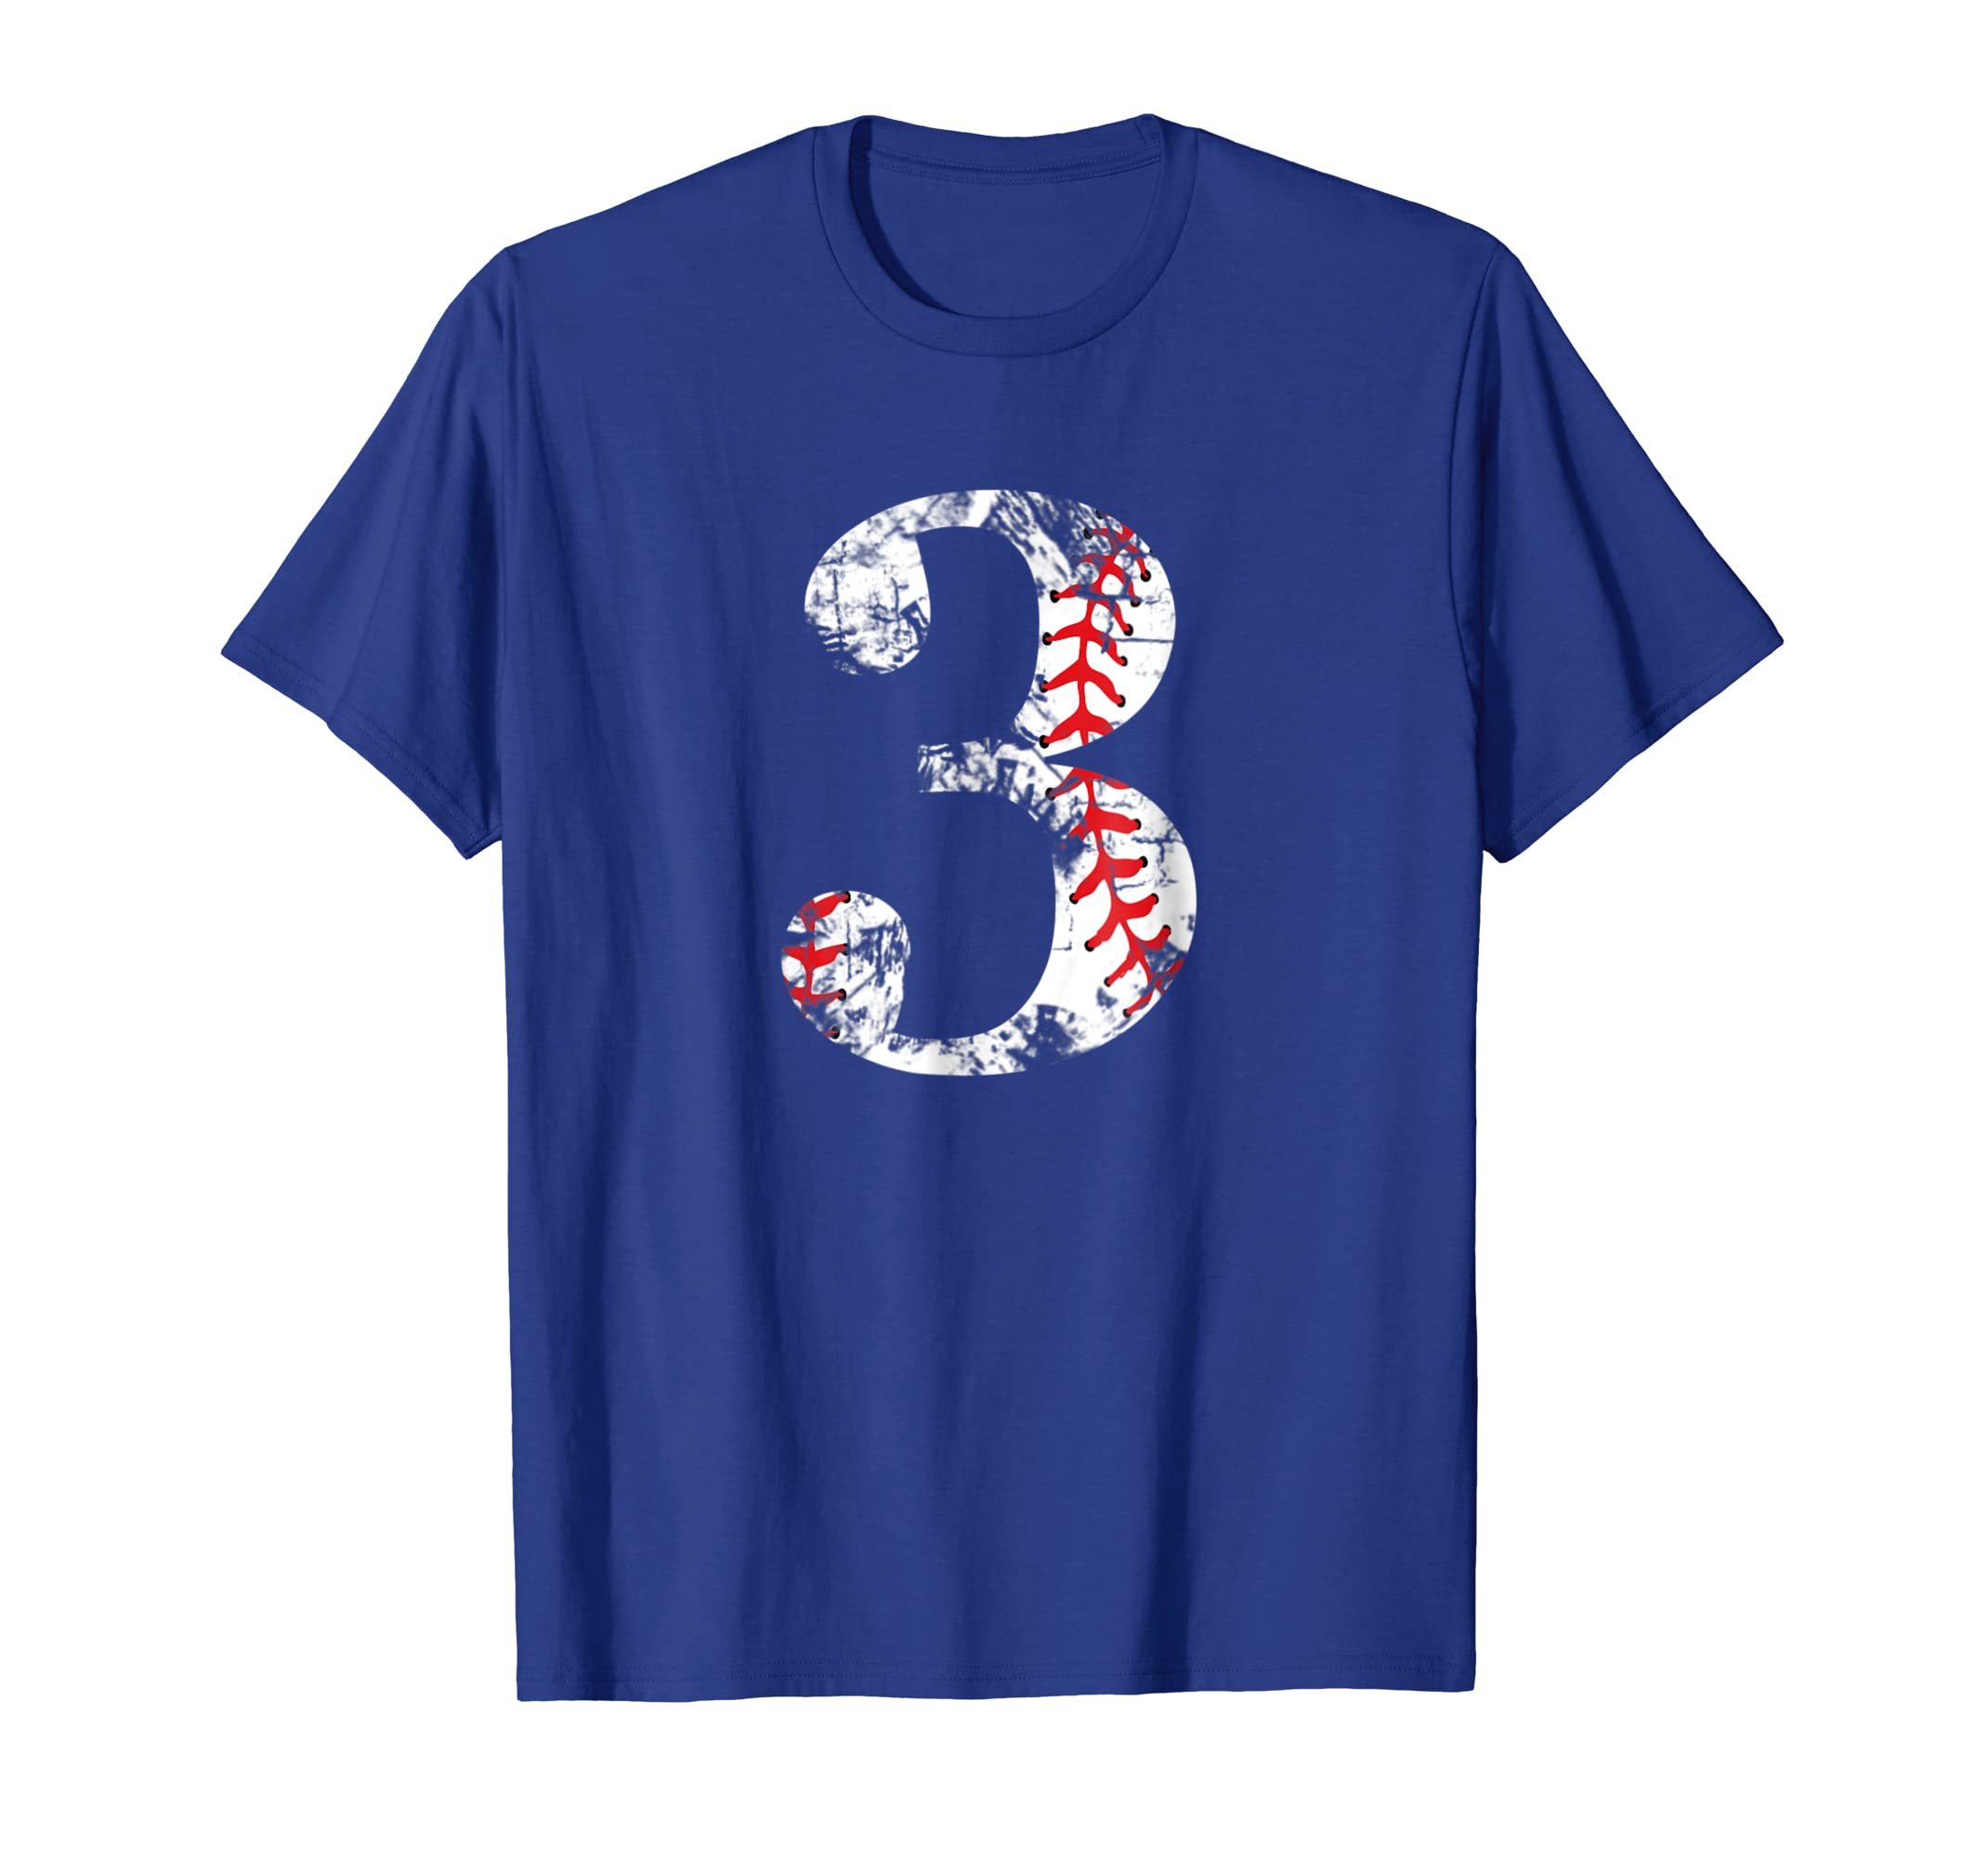 Amazon Third Birthday Baseball Fan T Shirt Clothing